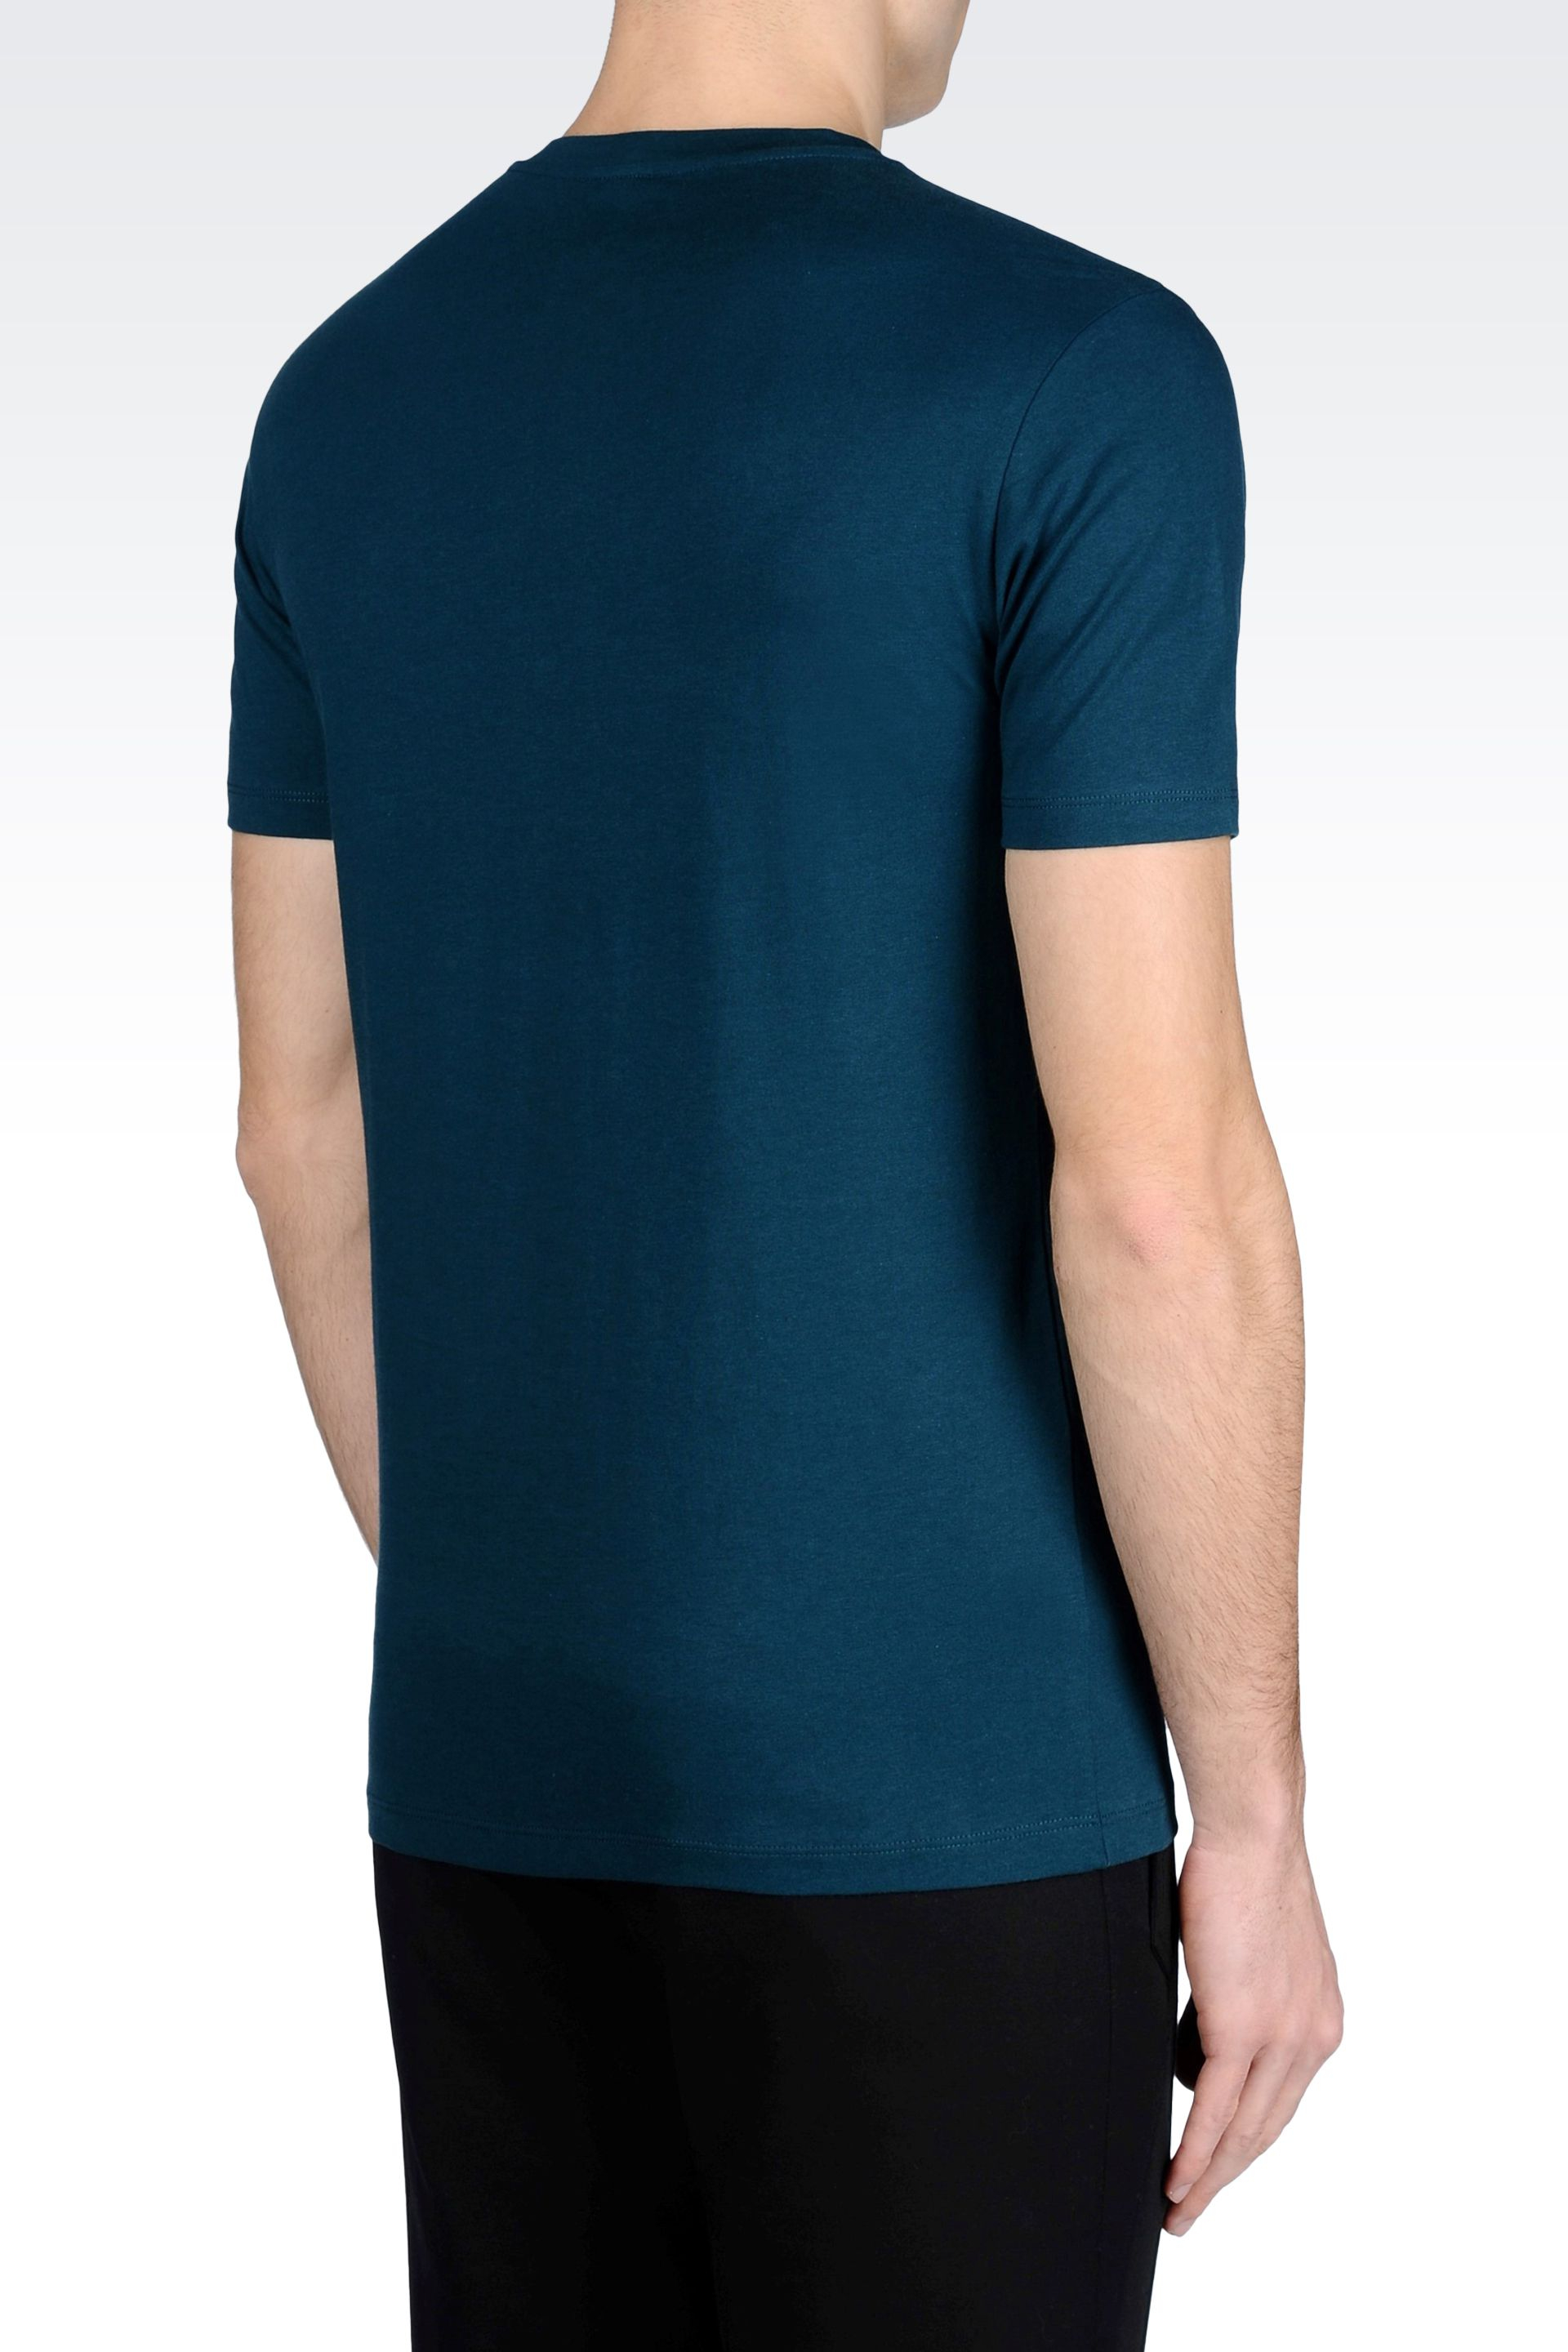 emporio armani t shirt in cotton jersey in blue for men lyst. Black Bedroom Furniture Sets. Home Design Ideas